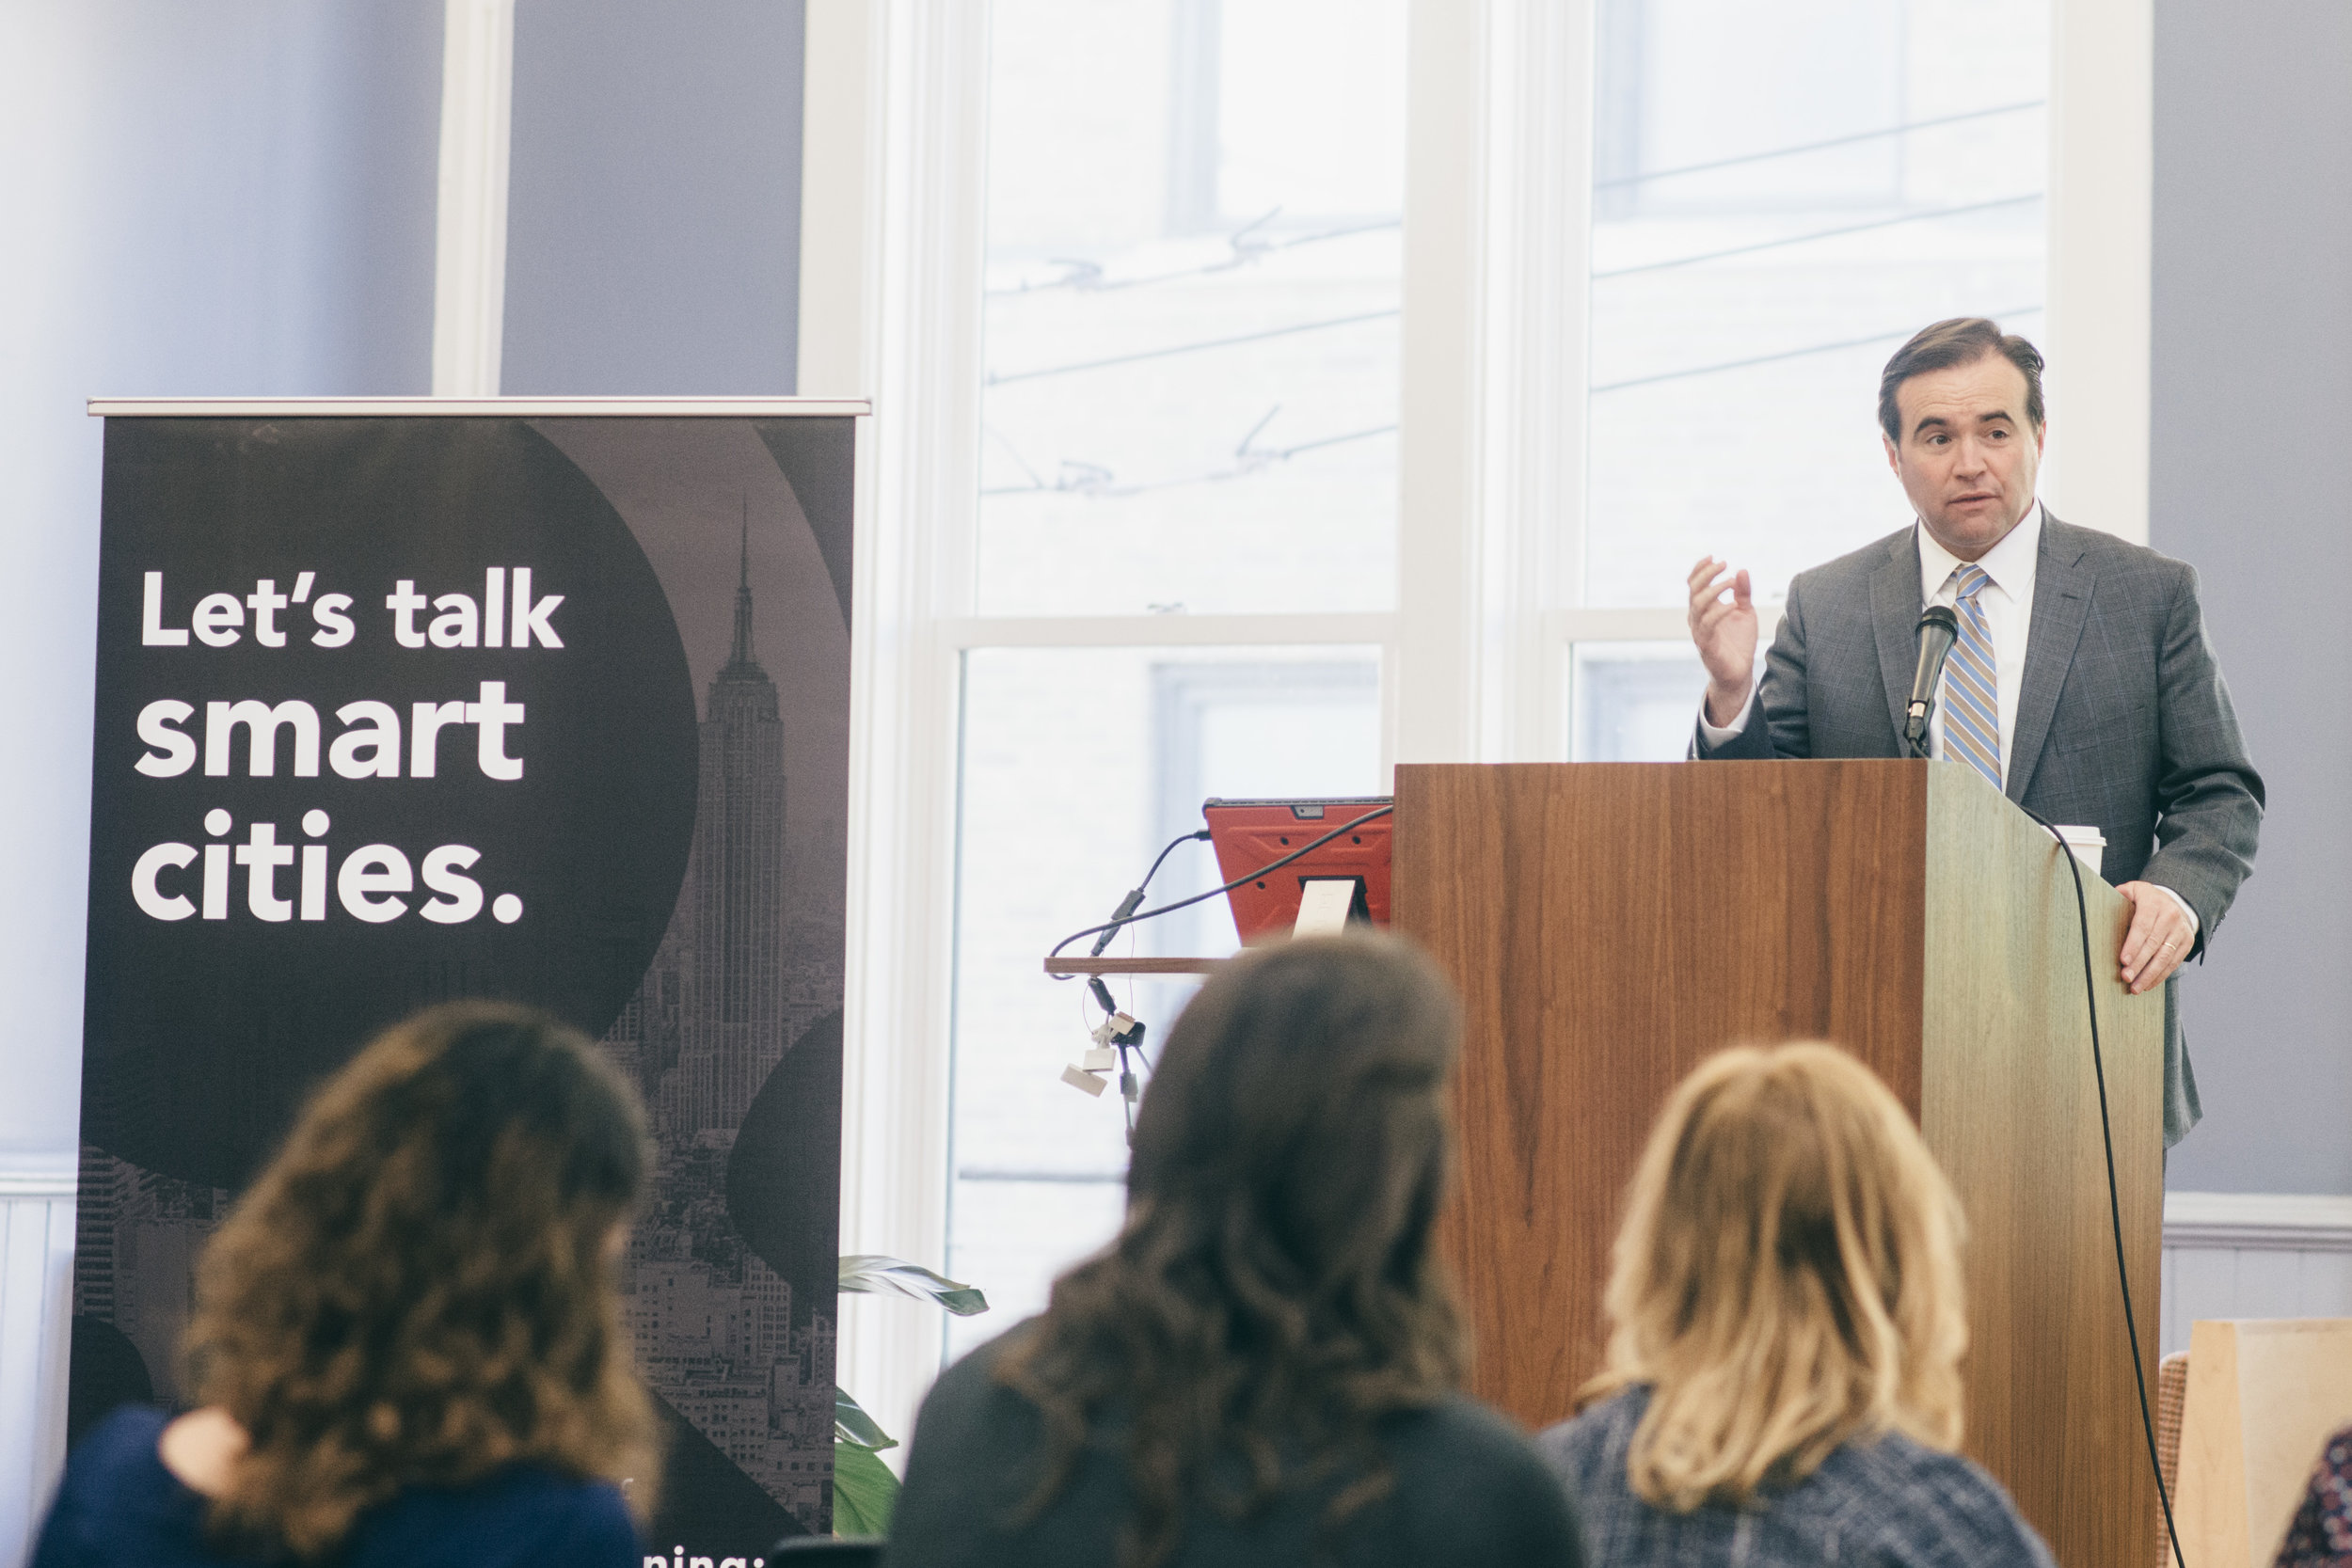 Pictured: Cincinnati Mayor John Cranley speaking at Venture Smarter's Smart Cincy Summit on April 25th, 2017.This week Cranley also joined 'Mayors for 100 percent Clean Energy' committing Cincinnati city government to move to 100 percent clean and renewable energy by 2035.